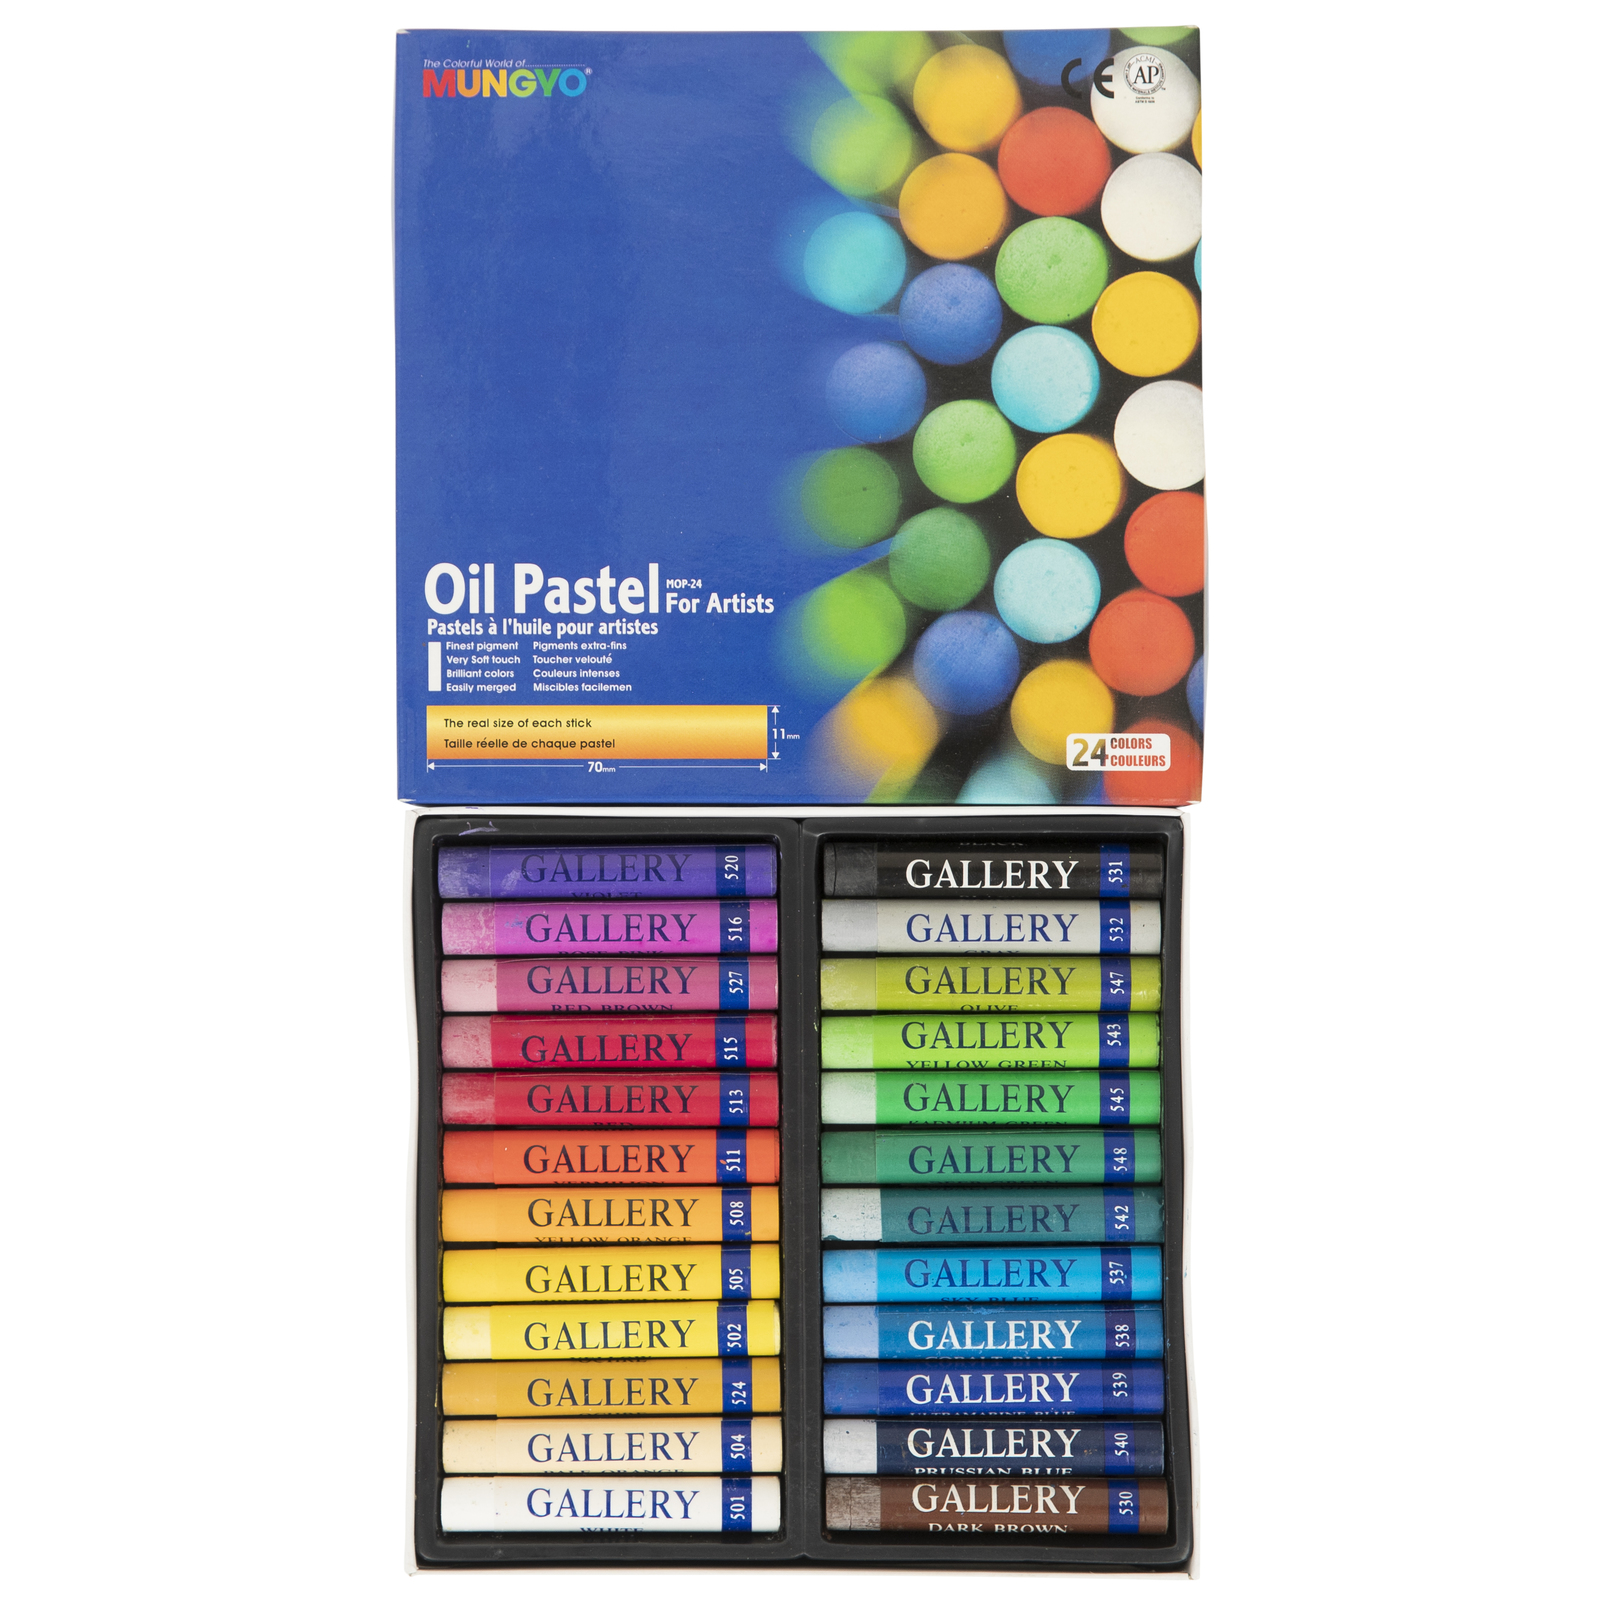 Mungyo: Gallery Oil Pastels (24 Pack) image